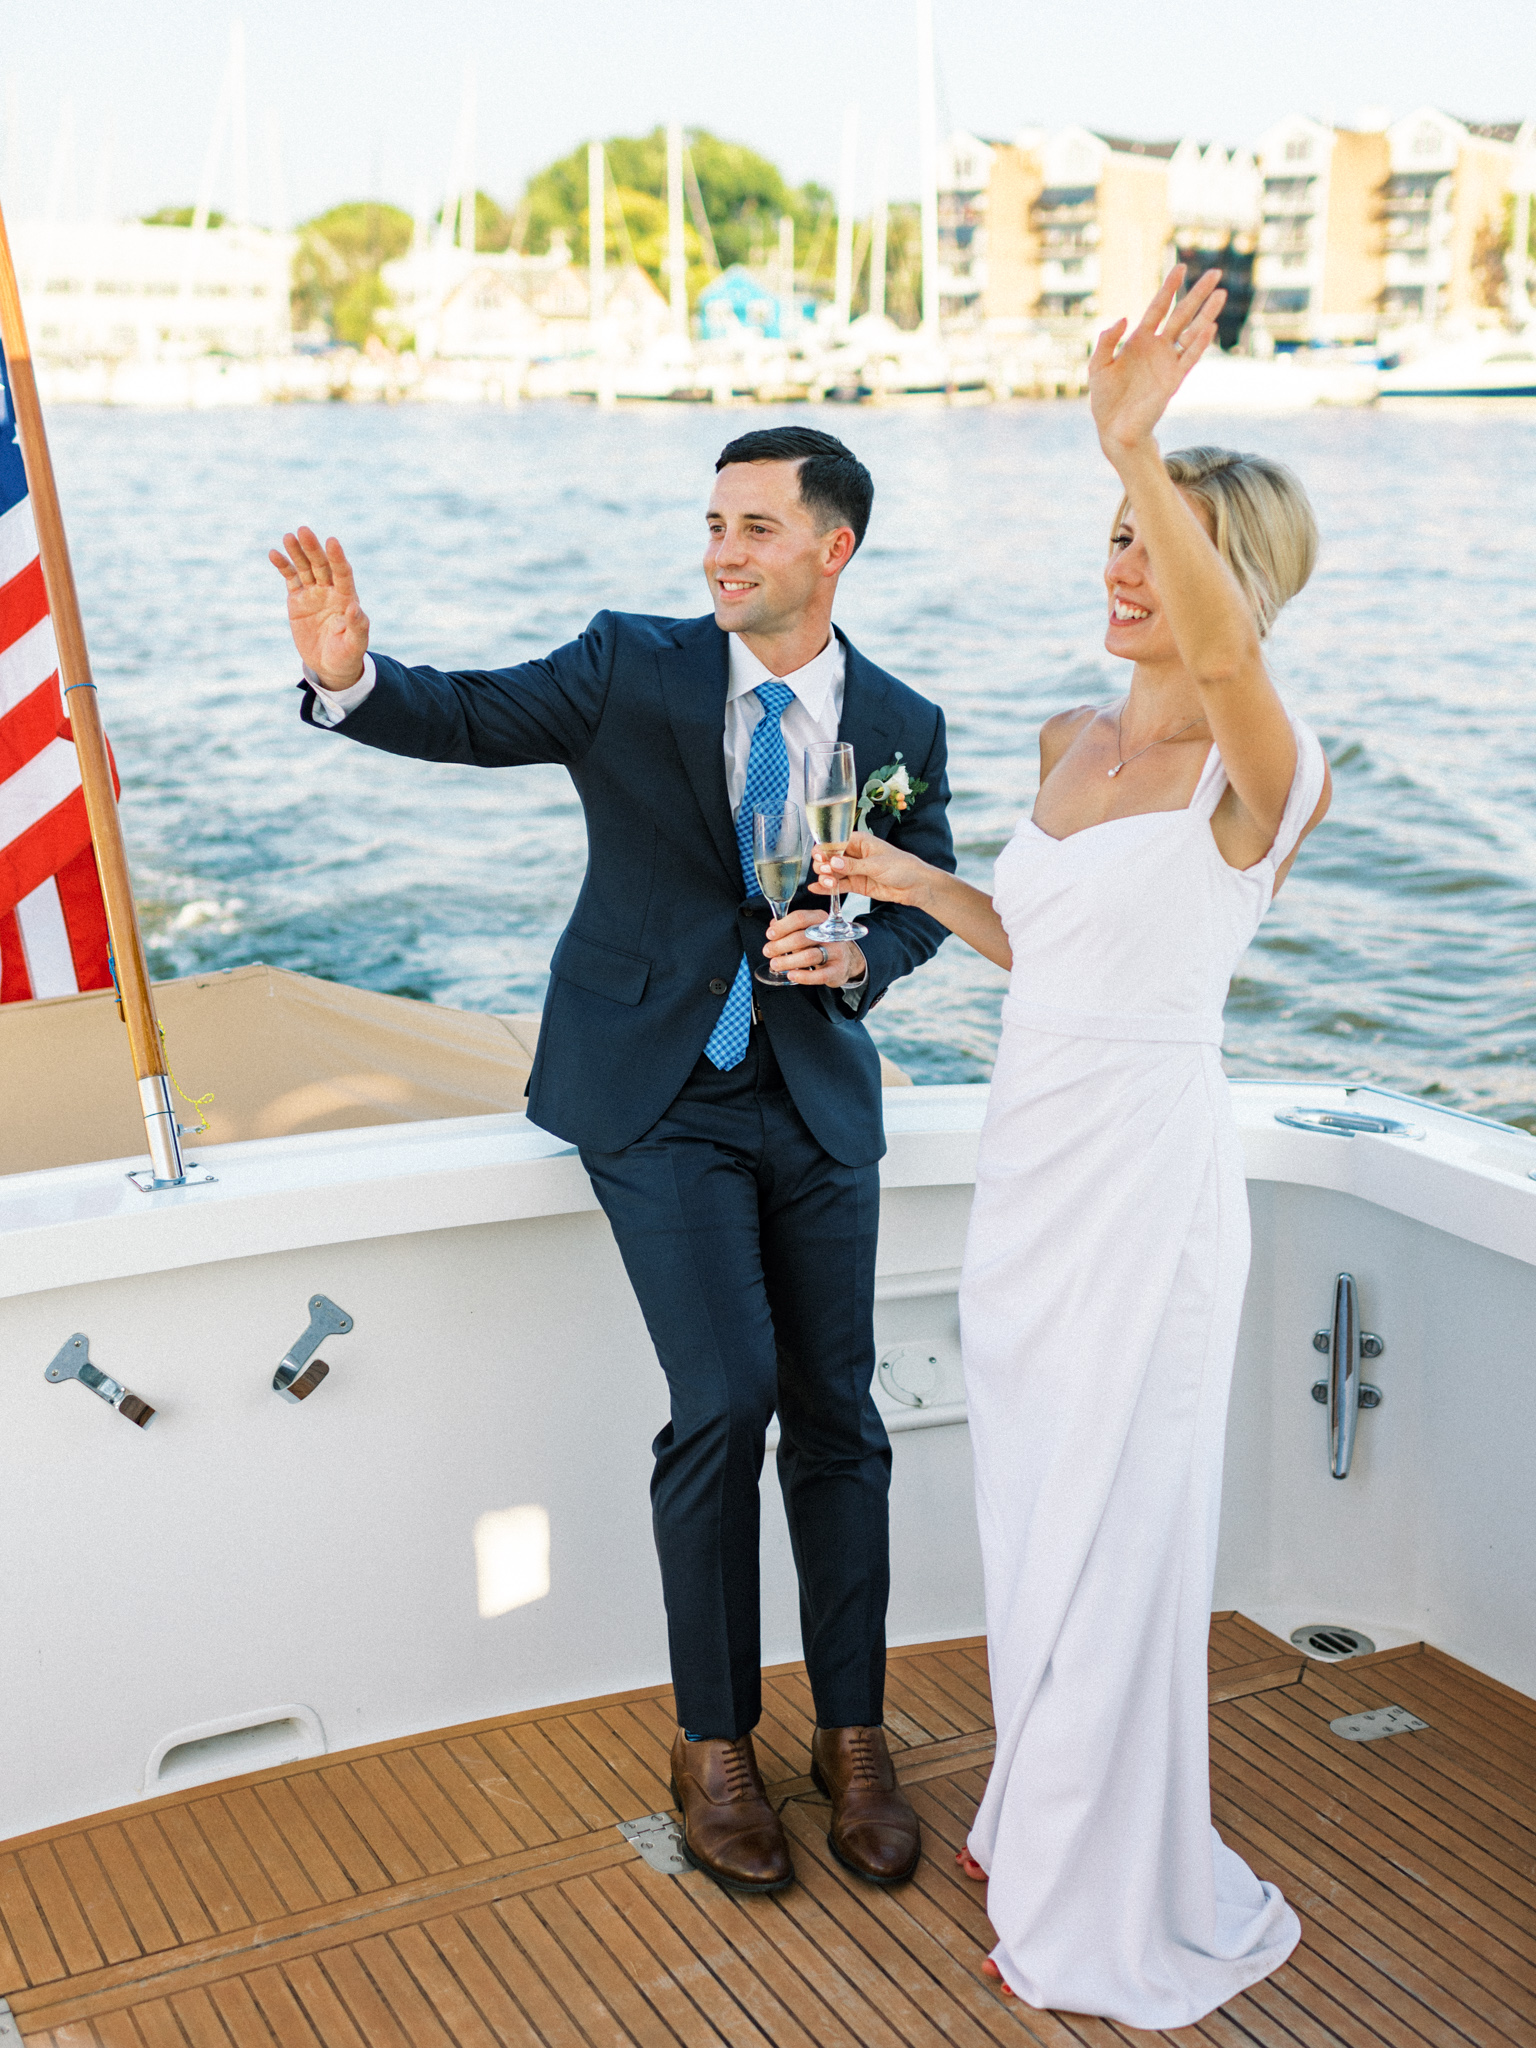 Gray_Joiner_e. losinio photography_annapolis-maryland-waterfront-elopement-349